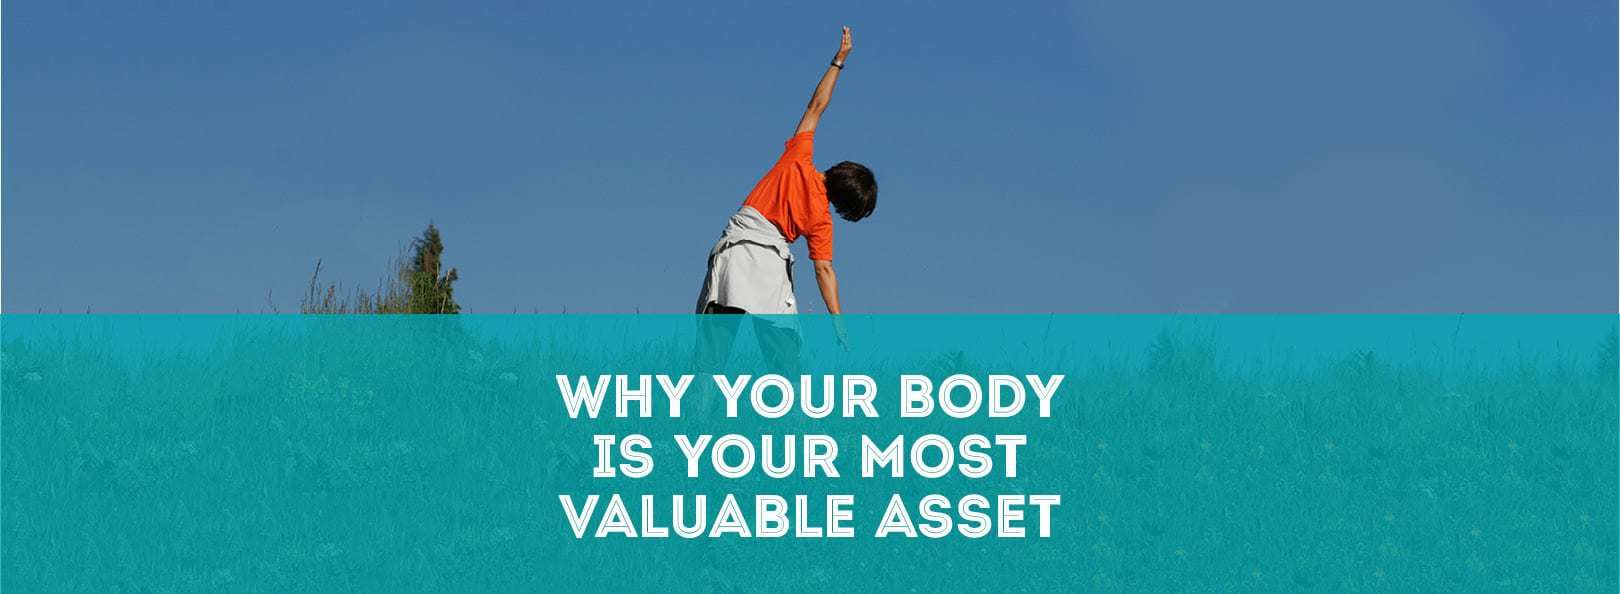 Why Your Body is Your Most Valuable Asset